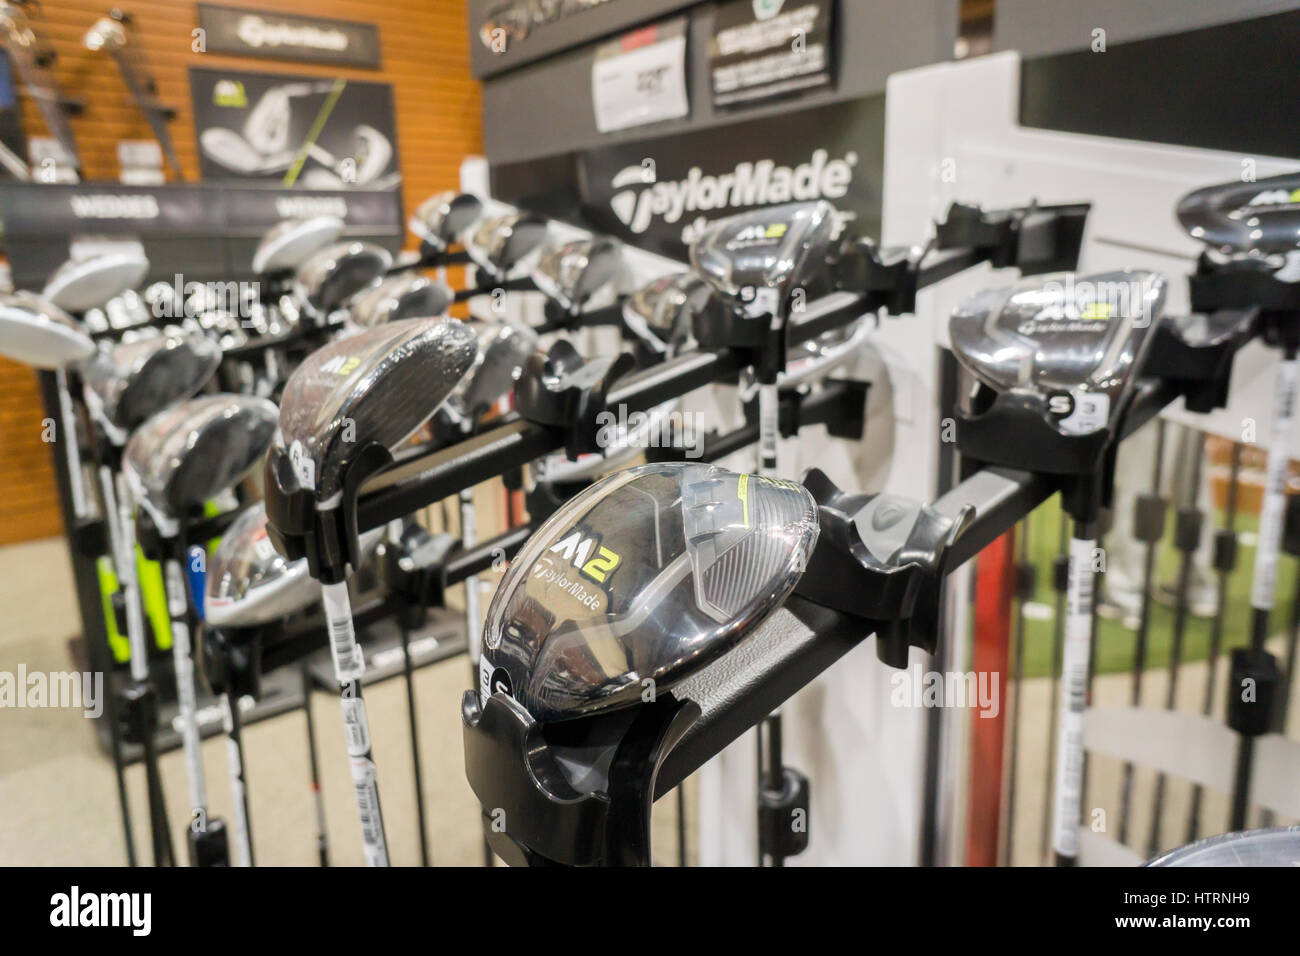 d6ccf3518118 TaylorMade brand golf drivers in the new Dick's Sporting Goods store in the  Glendale neighborhood of Queens in New York during its grand opening sales  on ...